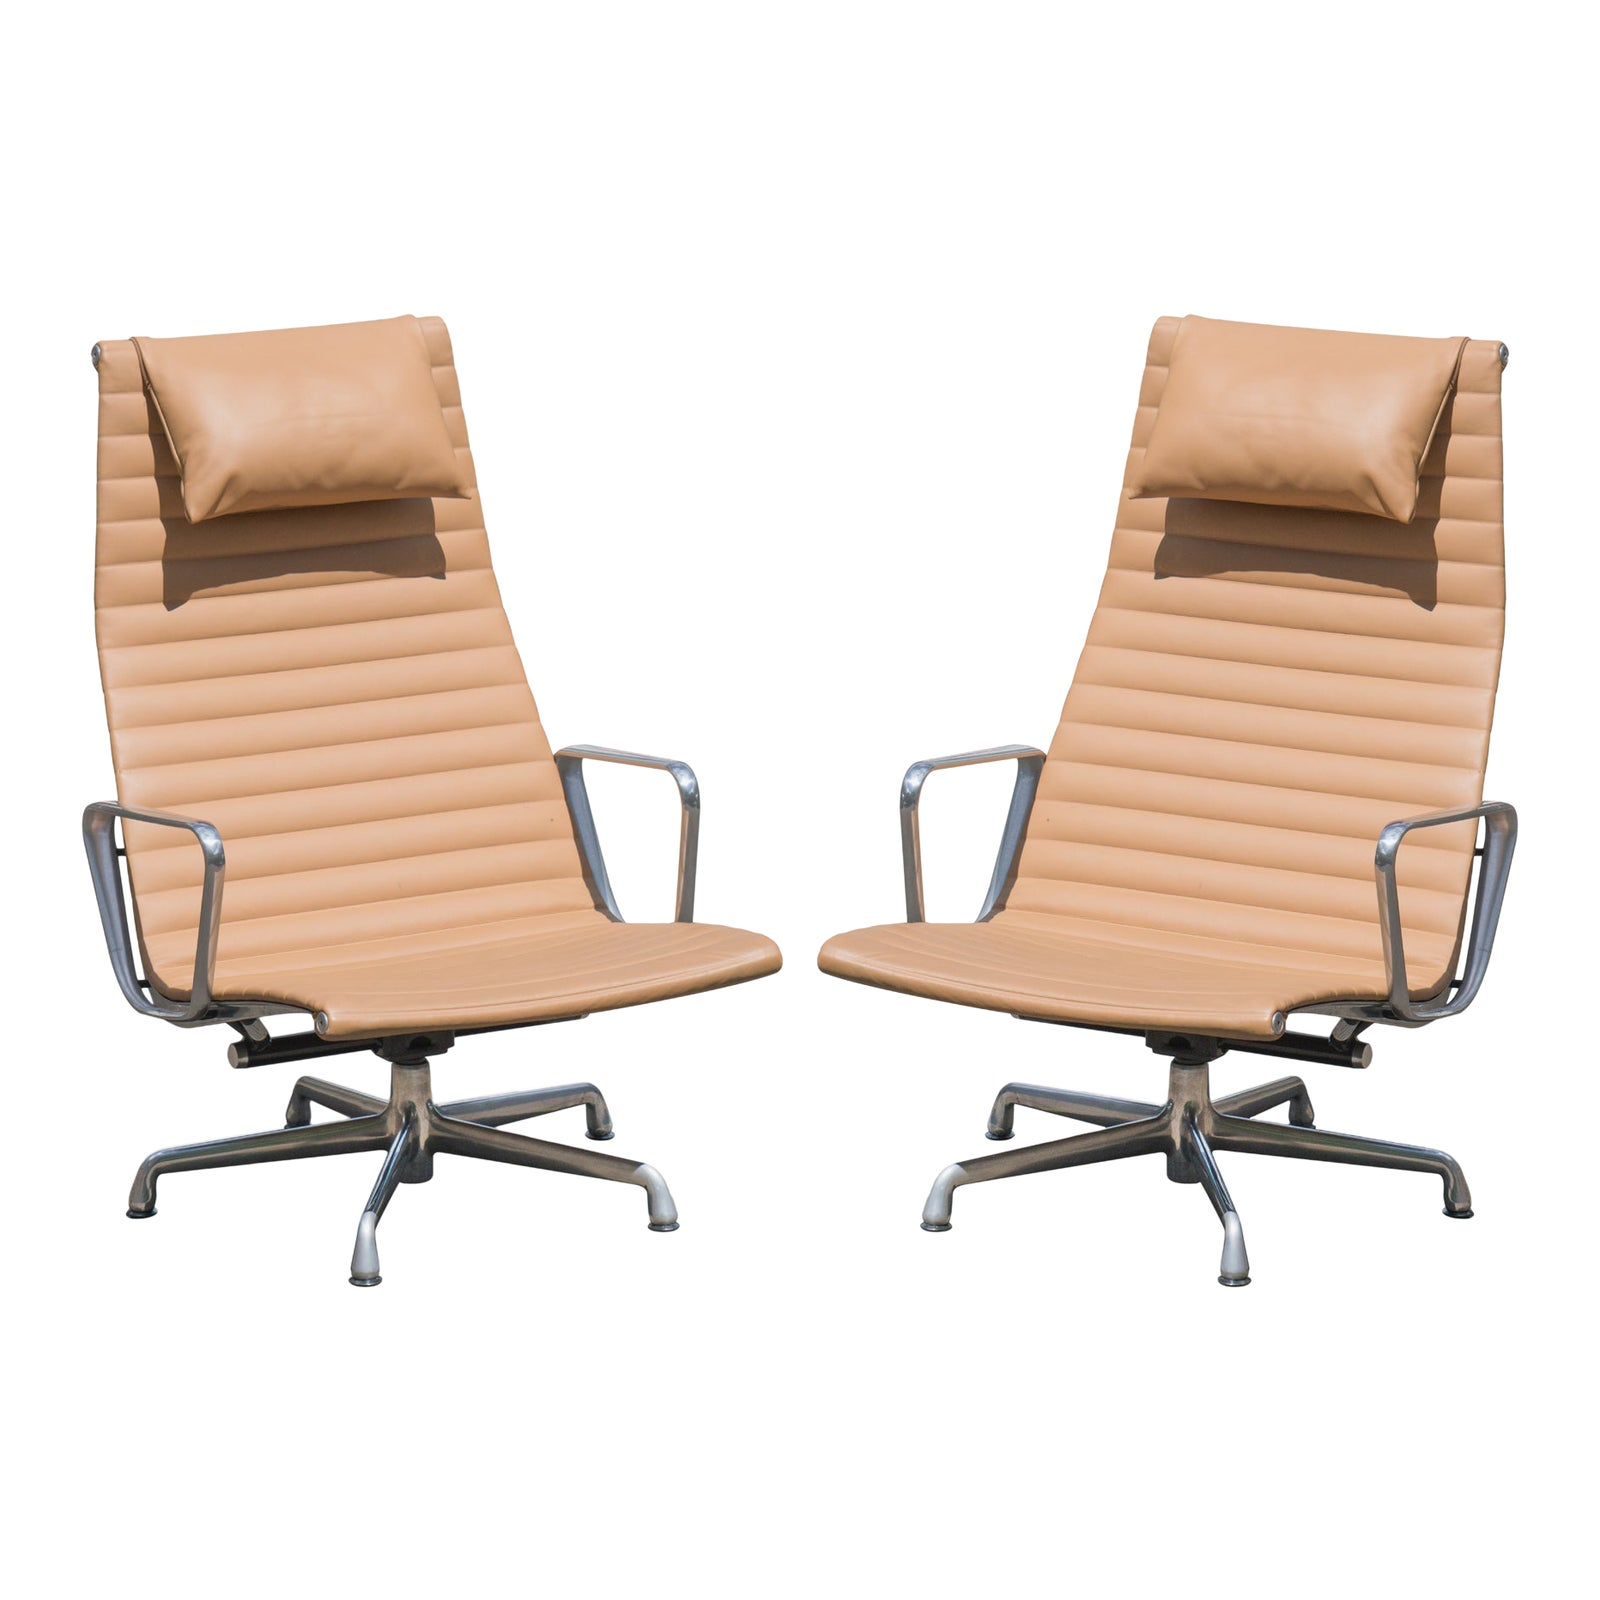 1950s Vintage Eames Aluminum Group Lounge Chairs A Pair Chairish